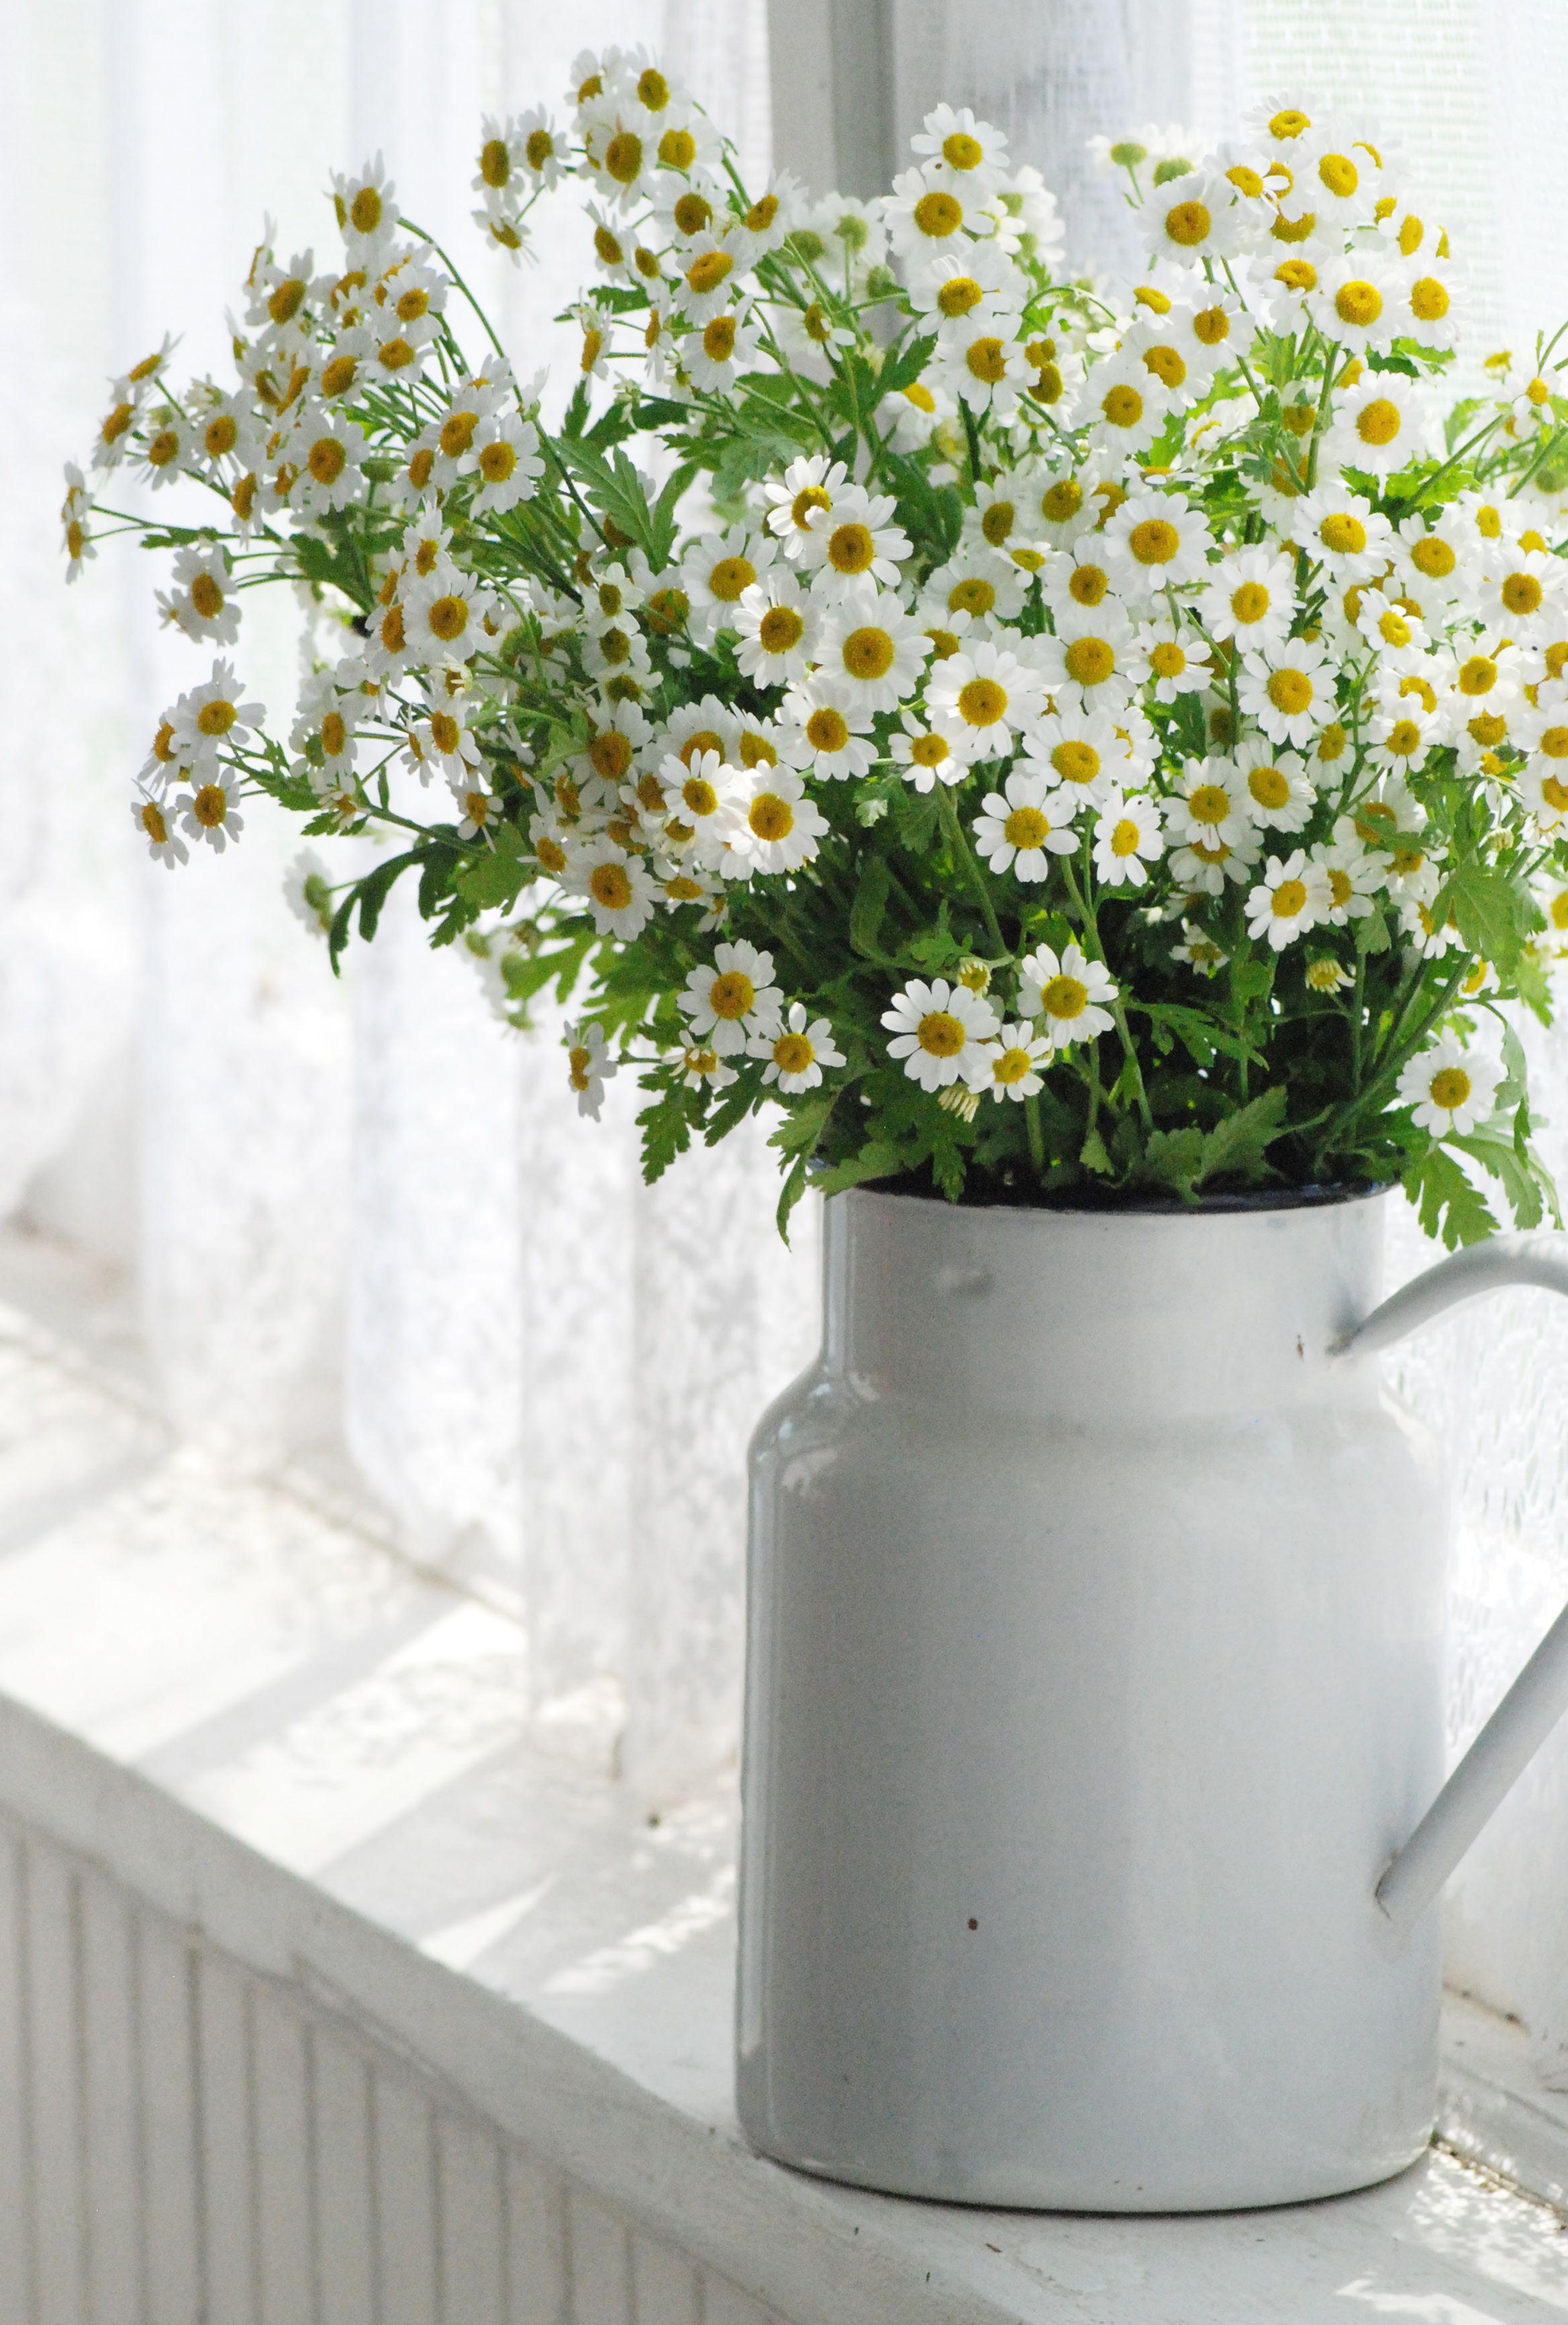 Feverfew From The Farmhouse Wares Garden Daisy With Images Beautiful Flowers Flower Arrangements Pretty Flowers